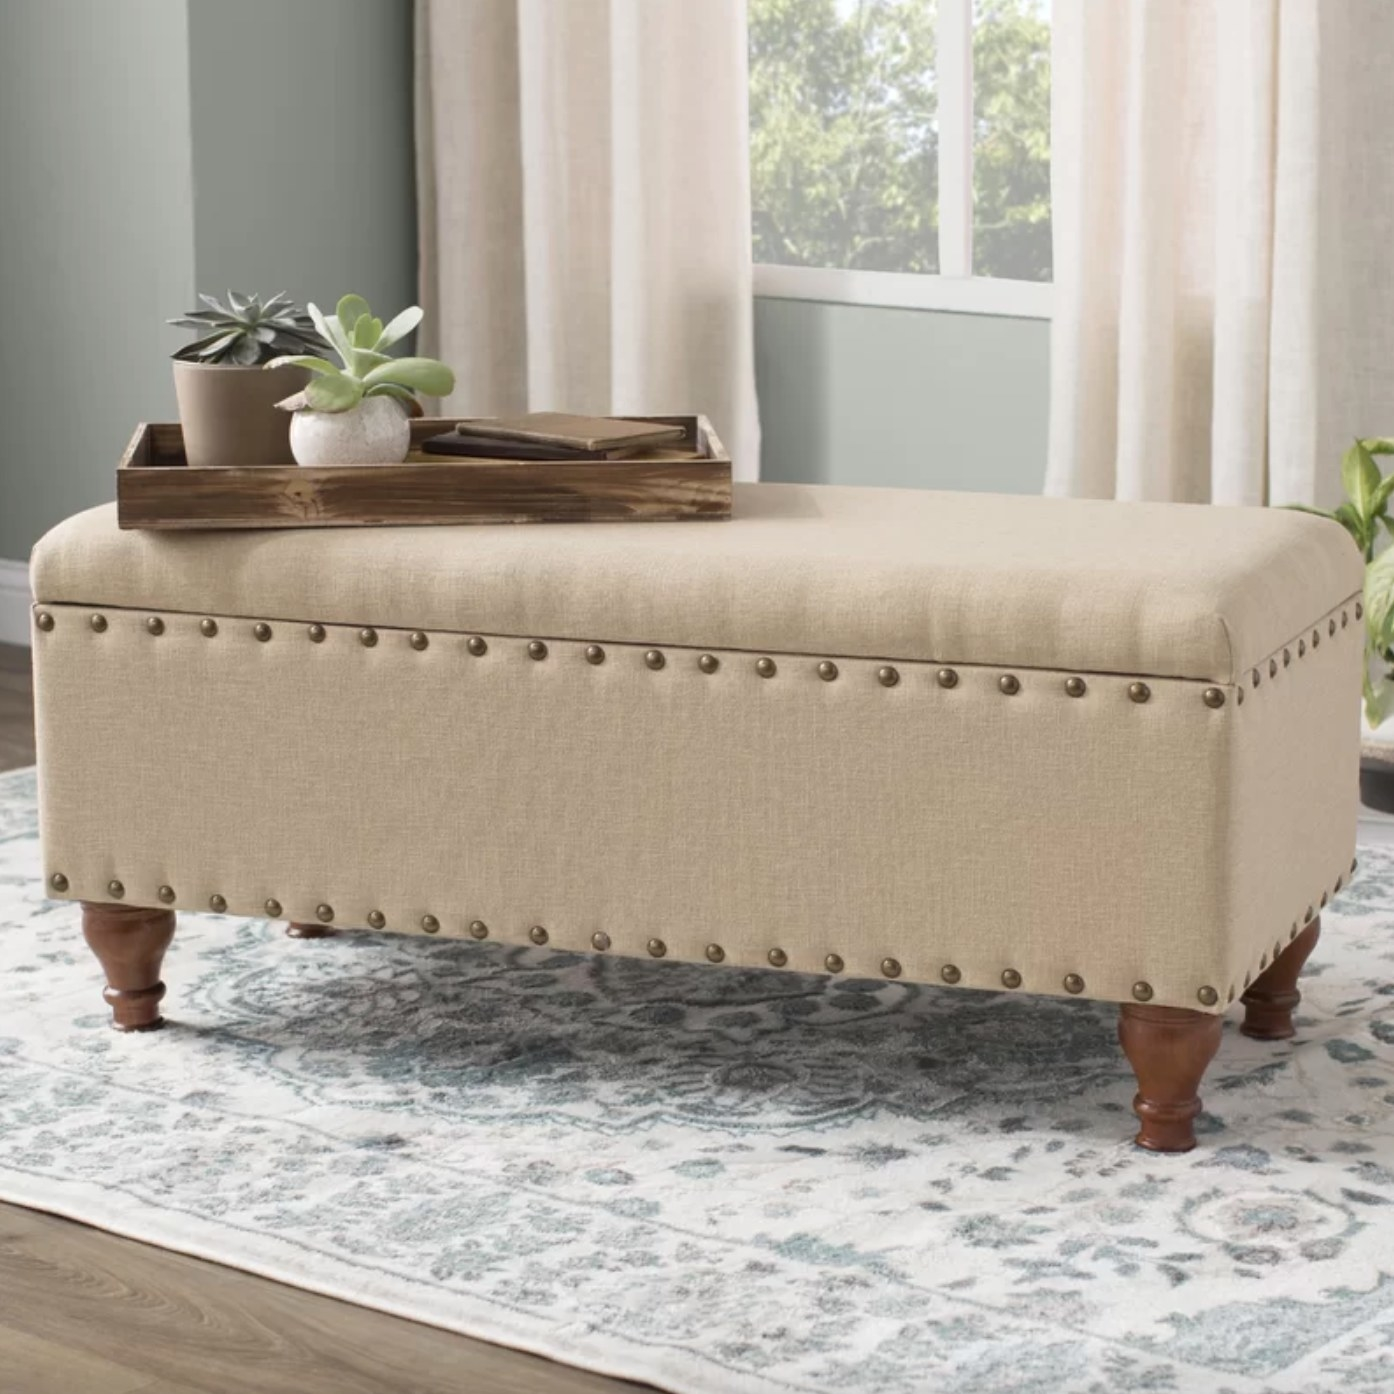 The flip-top storage bench in tan with brushed brass nailheads